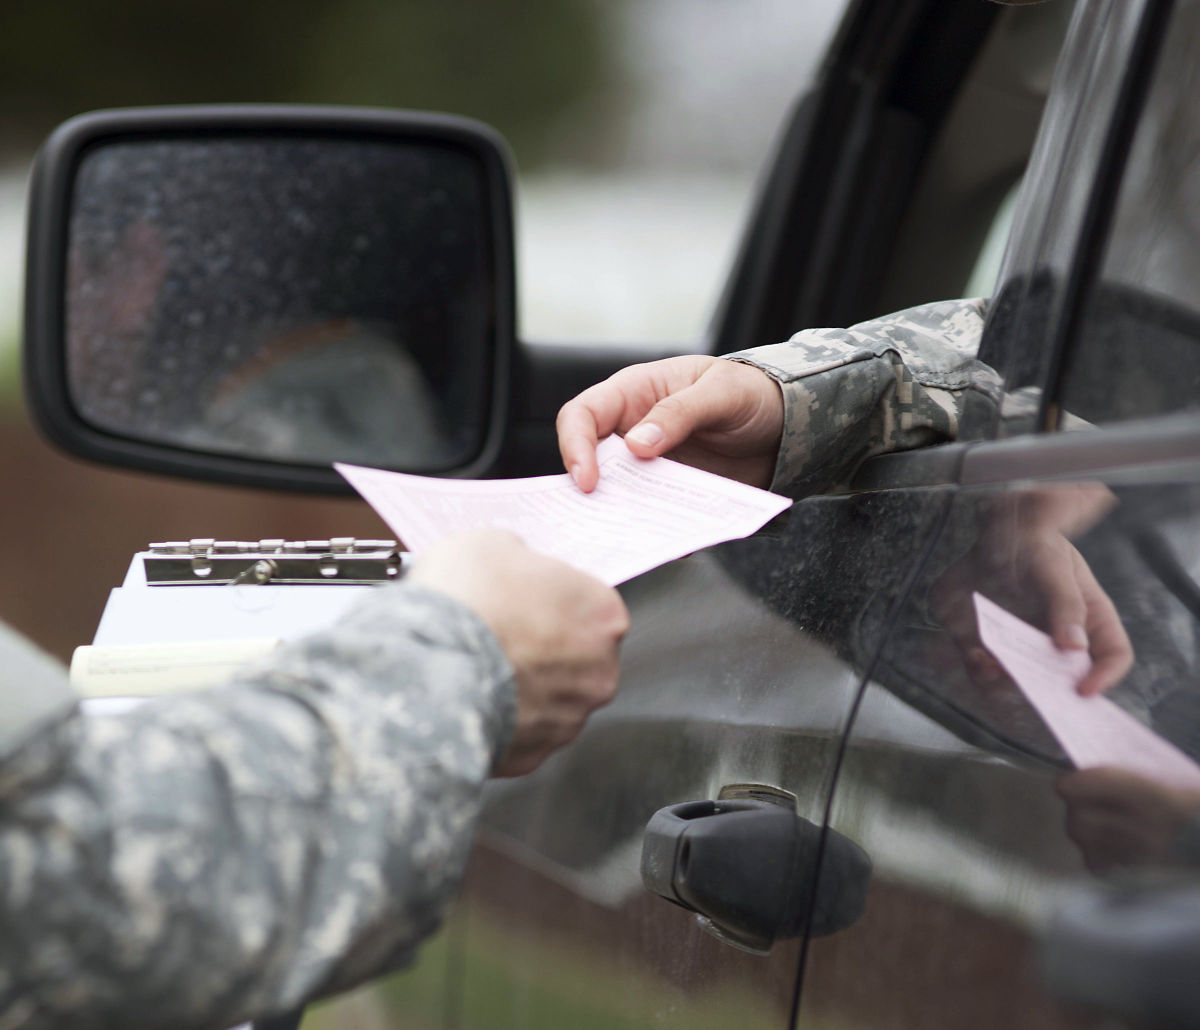 So you've been pulled over, now what?